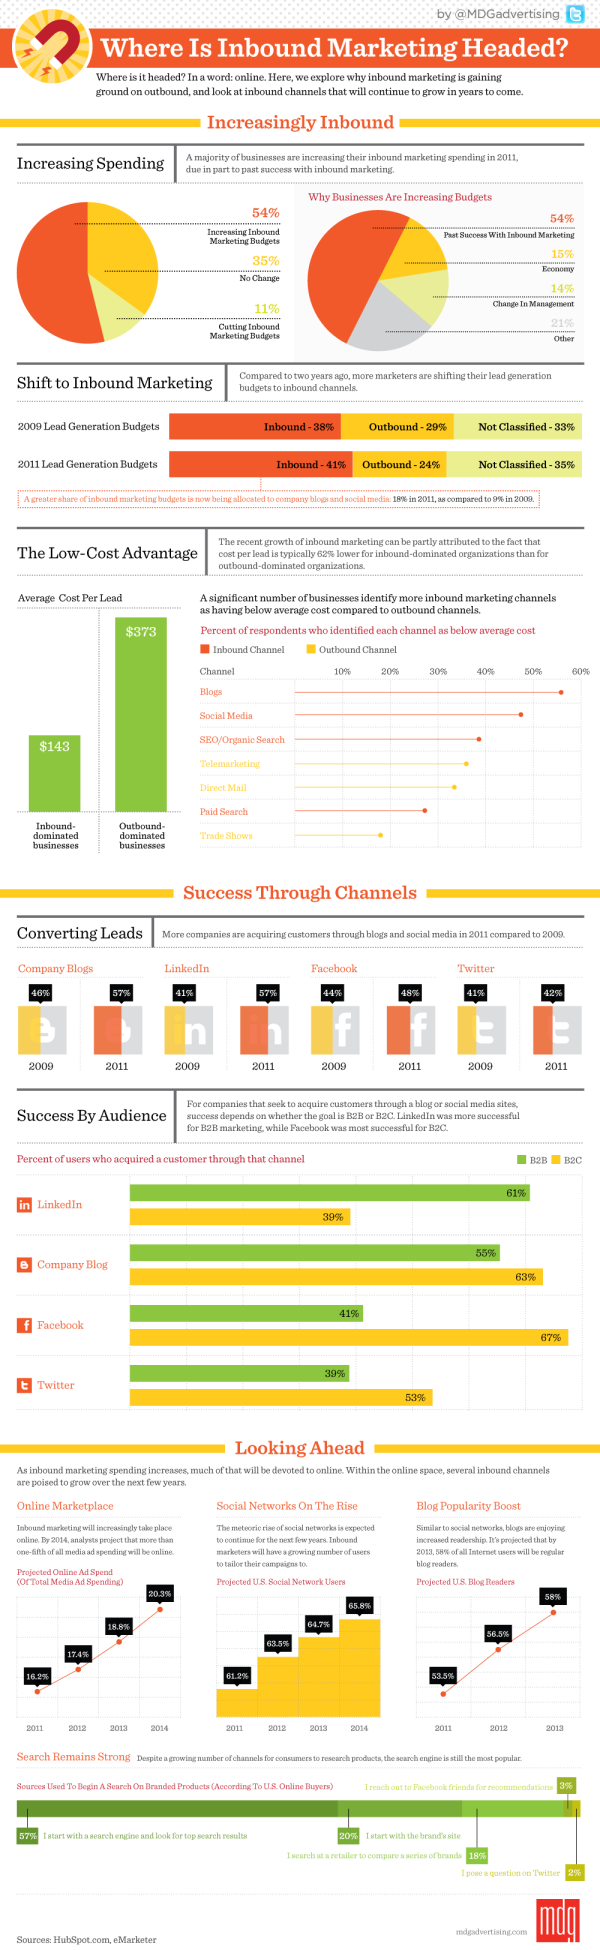 Where Is Inbound Marketing Headed? [Infographic]